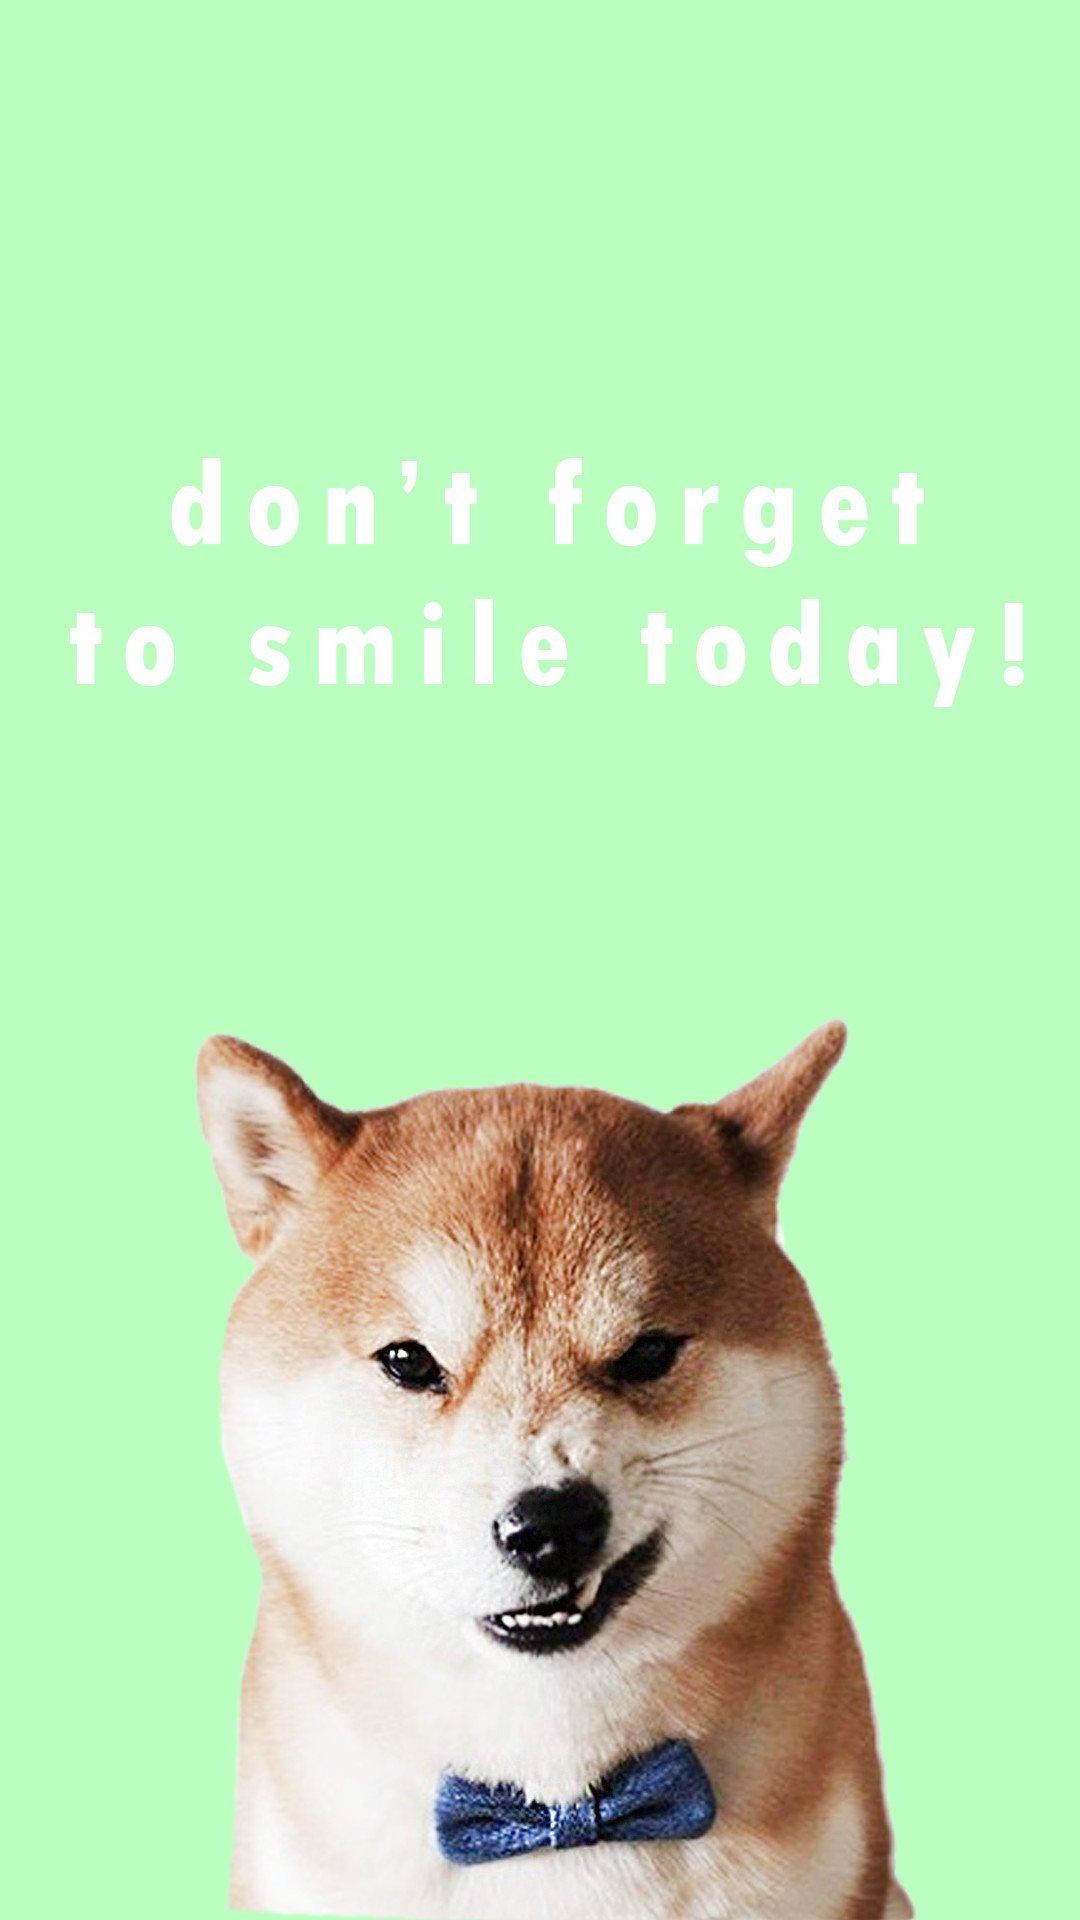 1080x1920 Shiba Inu Positive Lockscreen Wallpapers Shiba Inu Wallpaper Phone 1080x1920 Wallpaper Teahub Io